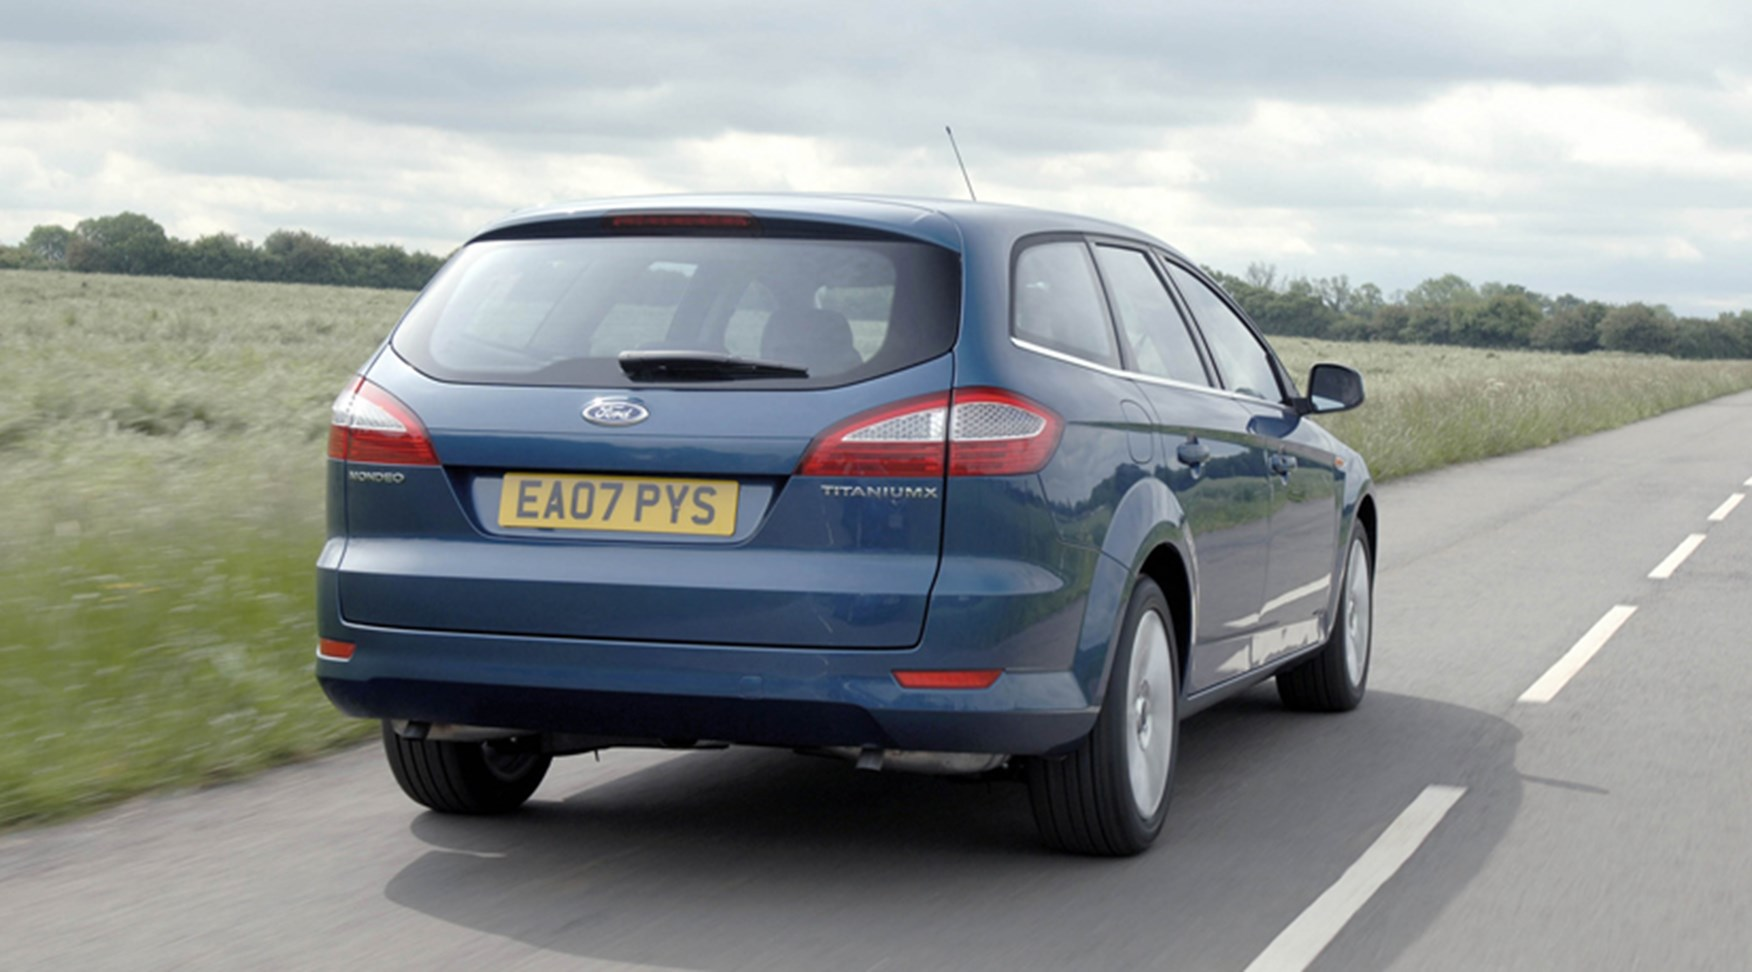 Ford Mondeo 2 2 Tdci Titanium X Estate 2008 Review By